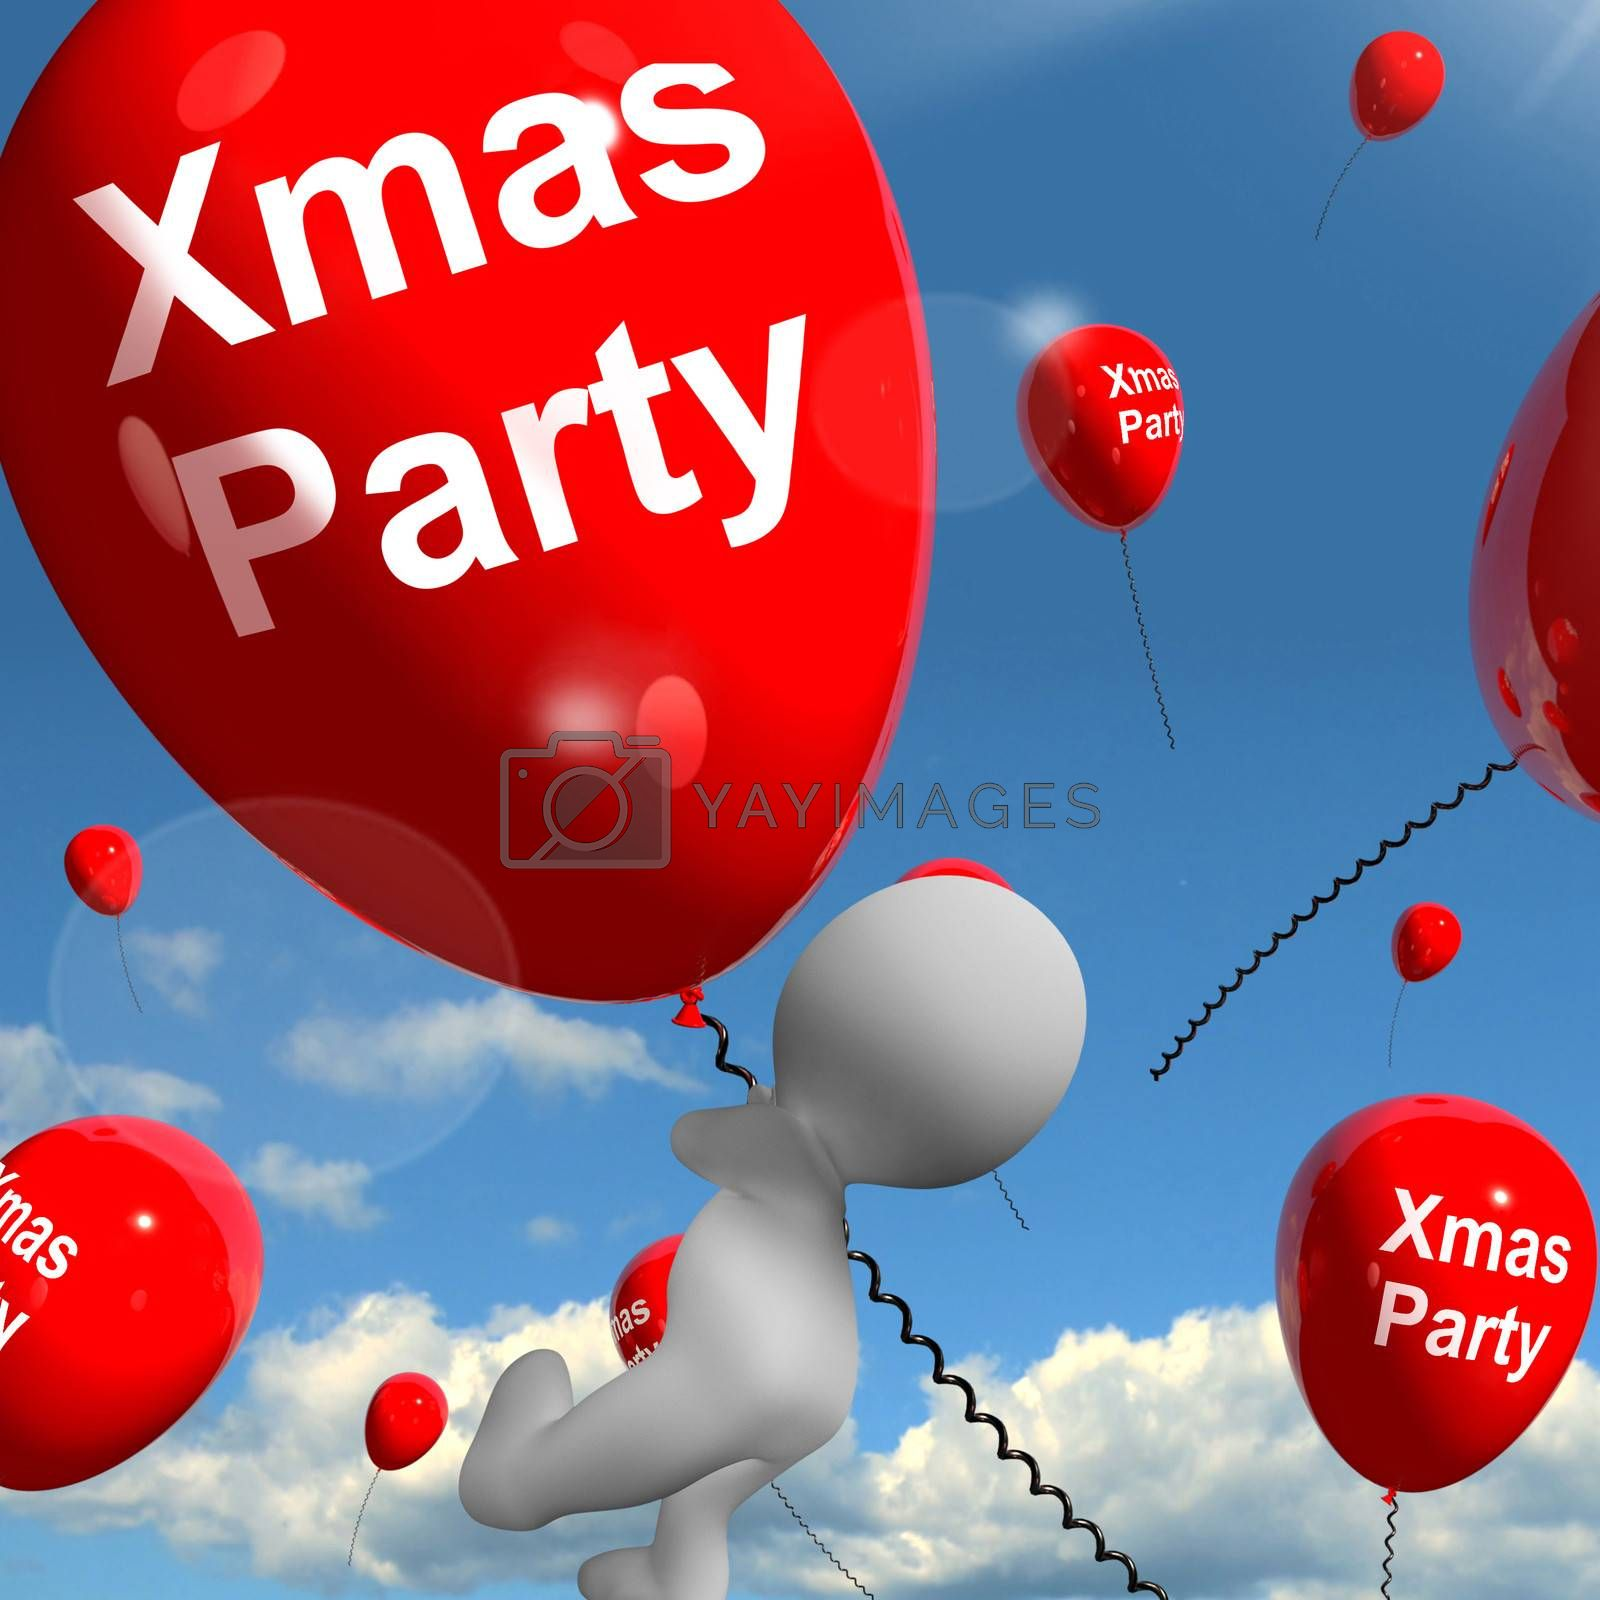 Xmas Party Balloons Showing Christmas Celebrations and Festivity